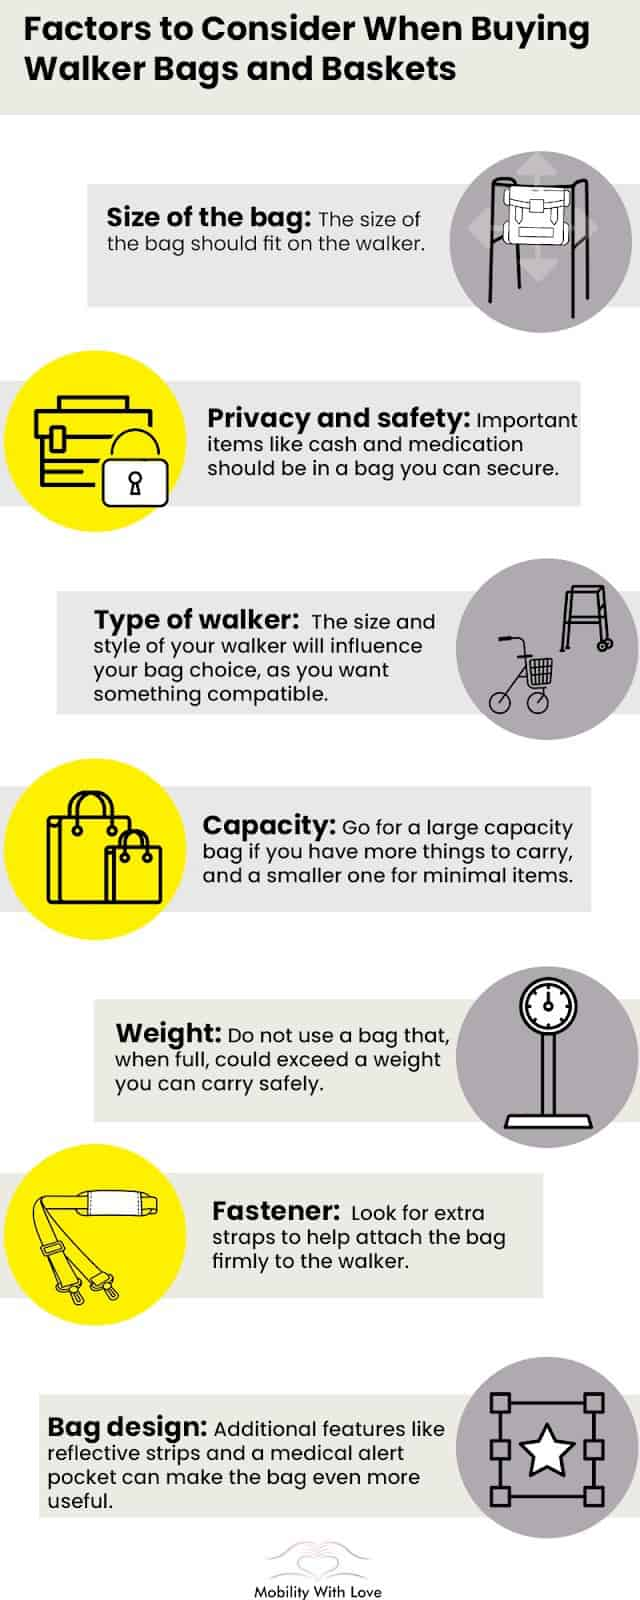 Best Bags & Baskets for Walkers